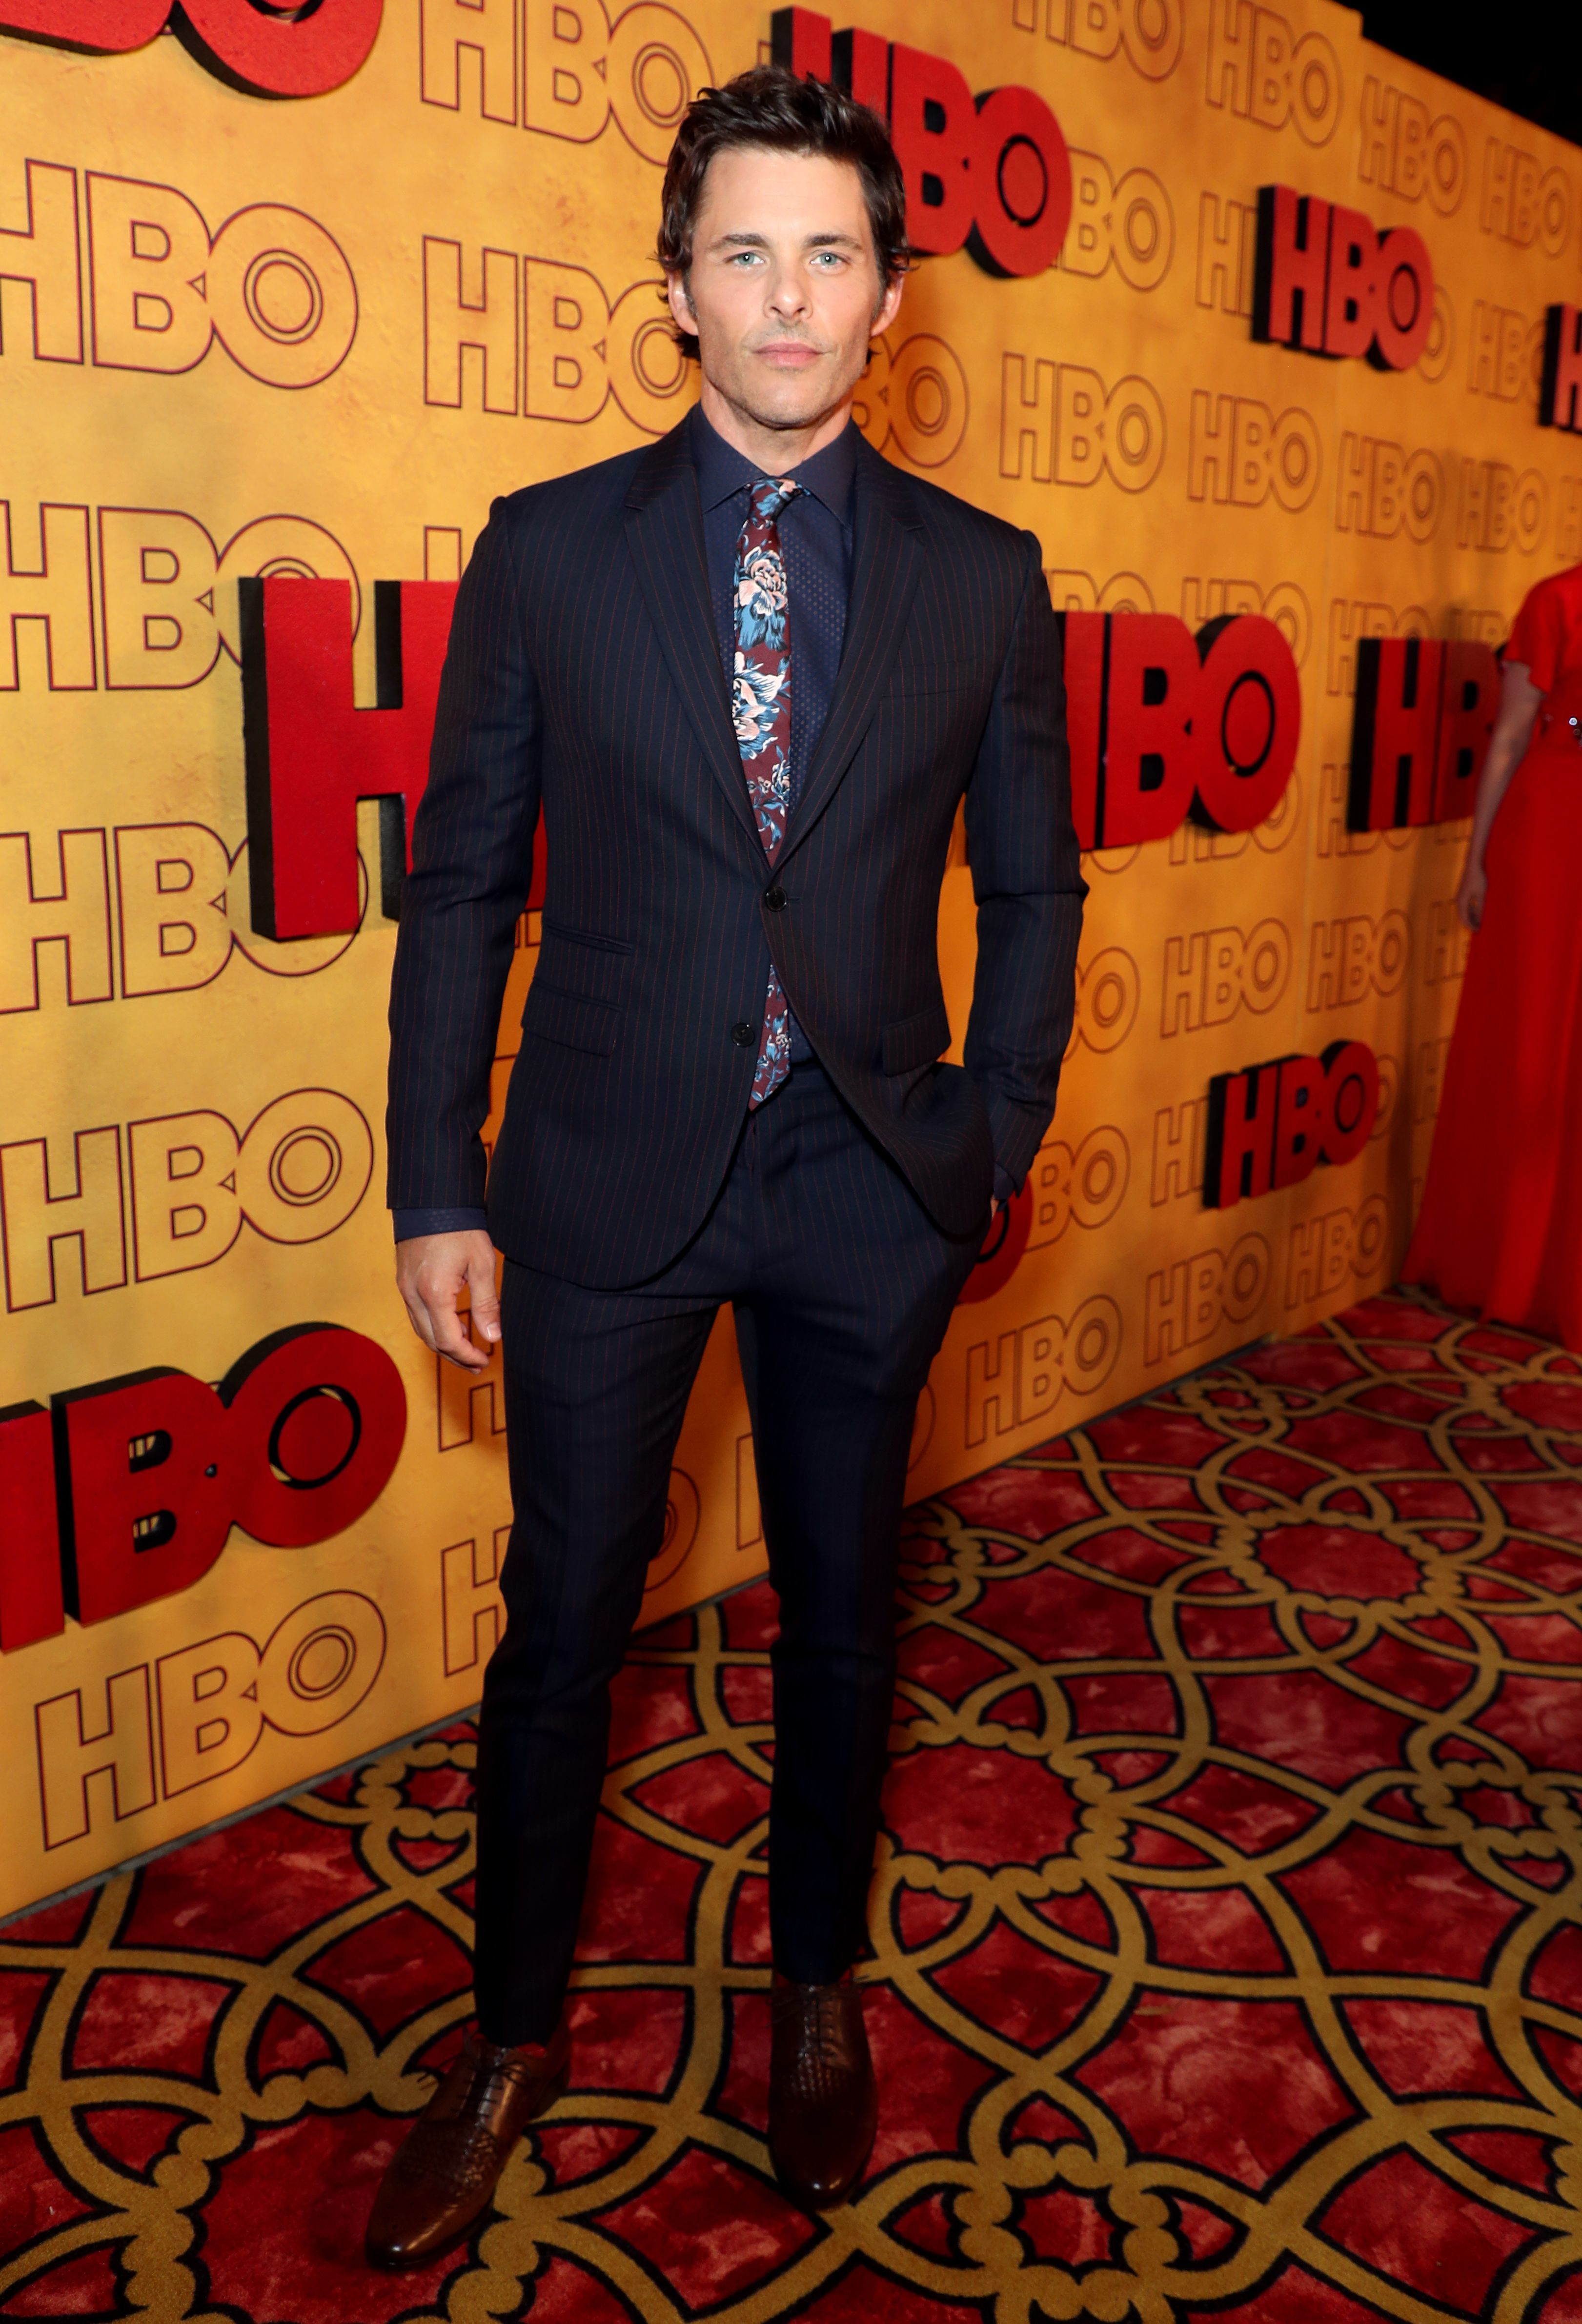 James Marsden attends the HBO afterparty in Los Angeles on Sept. 17, 2017.